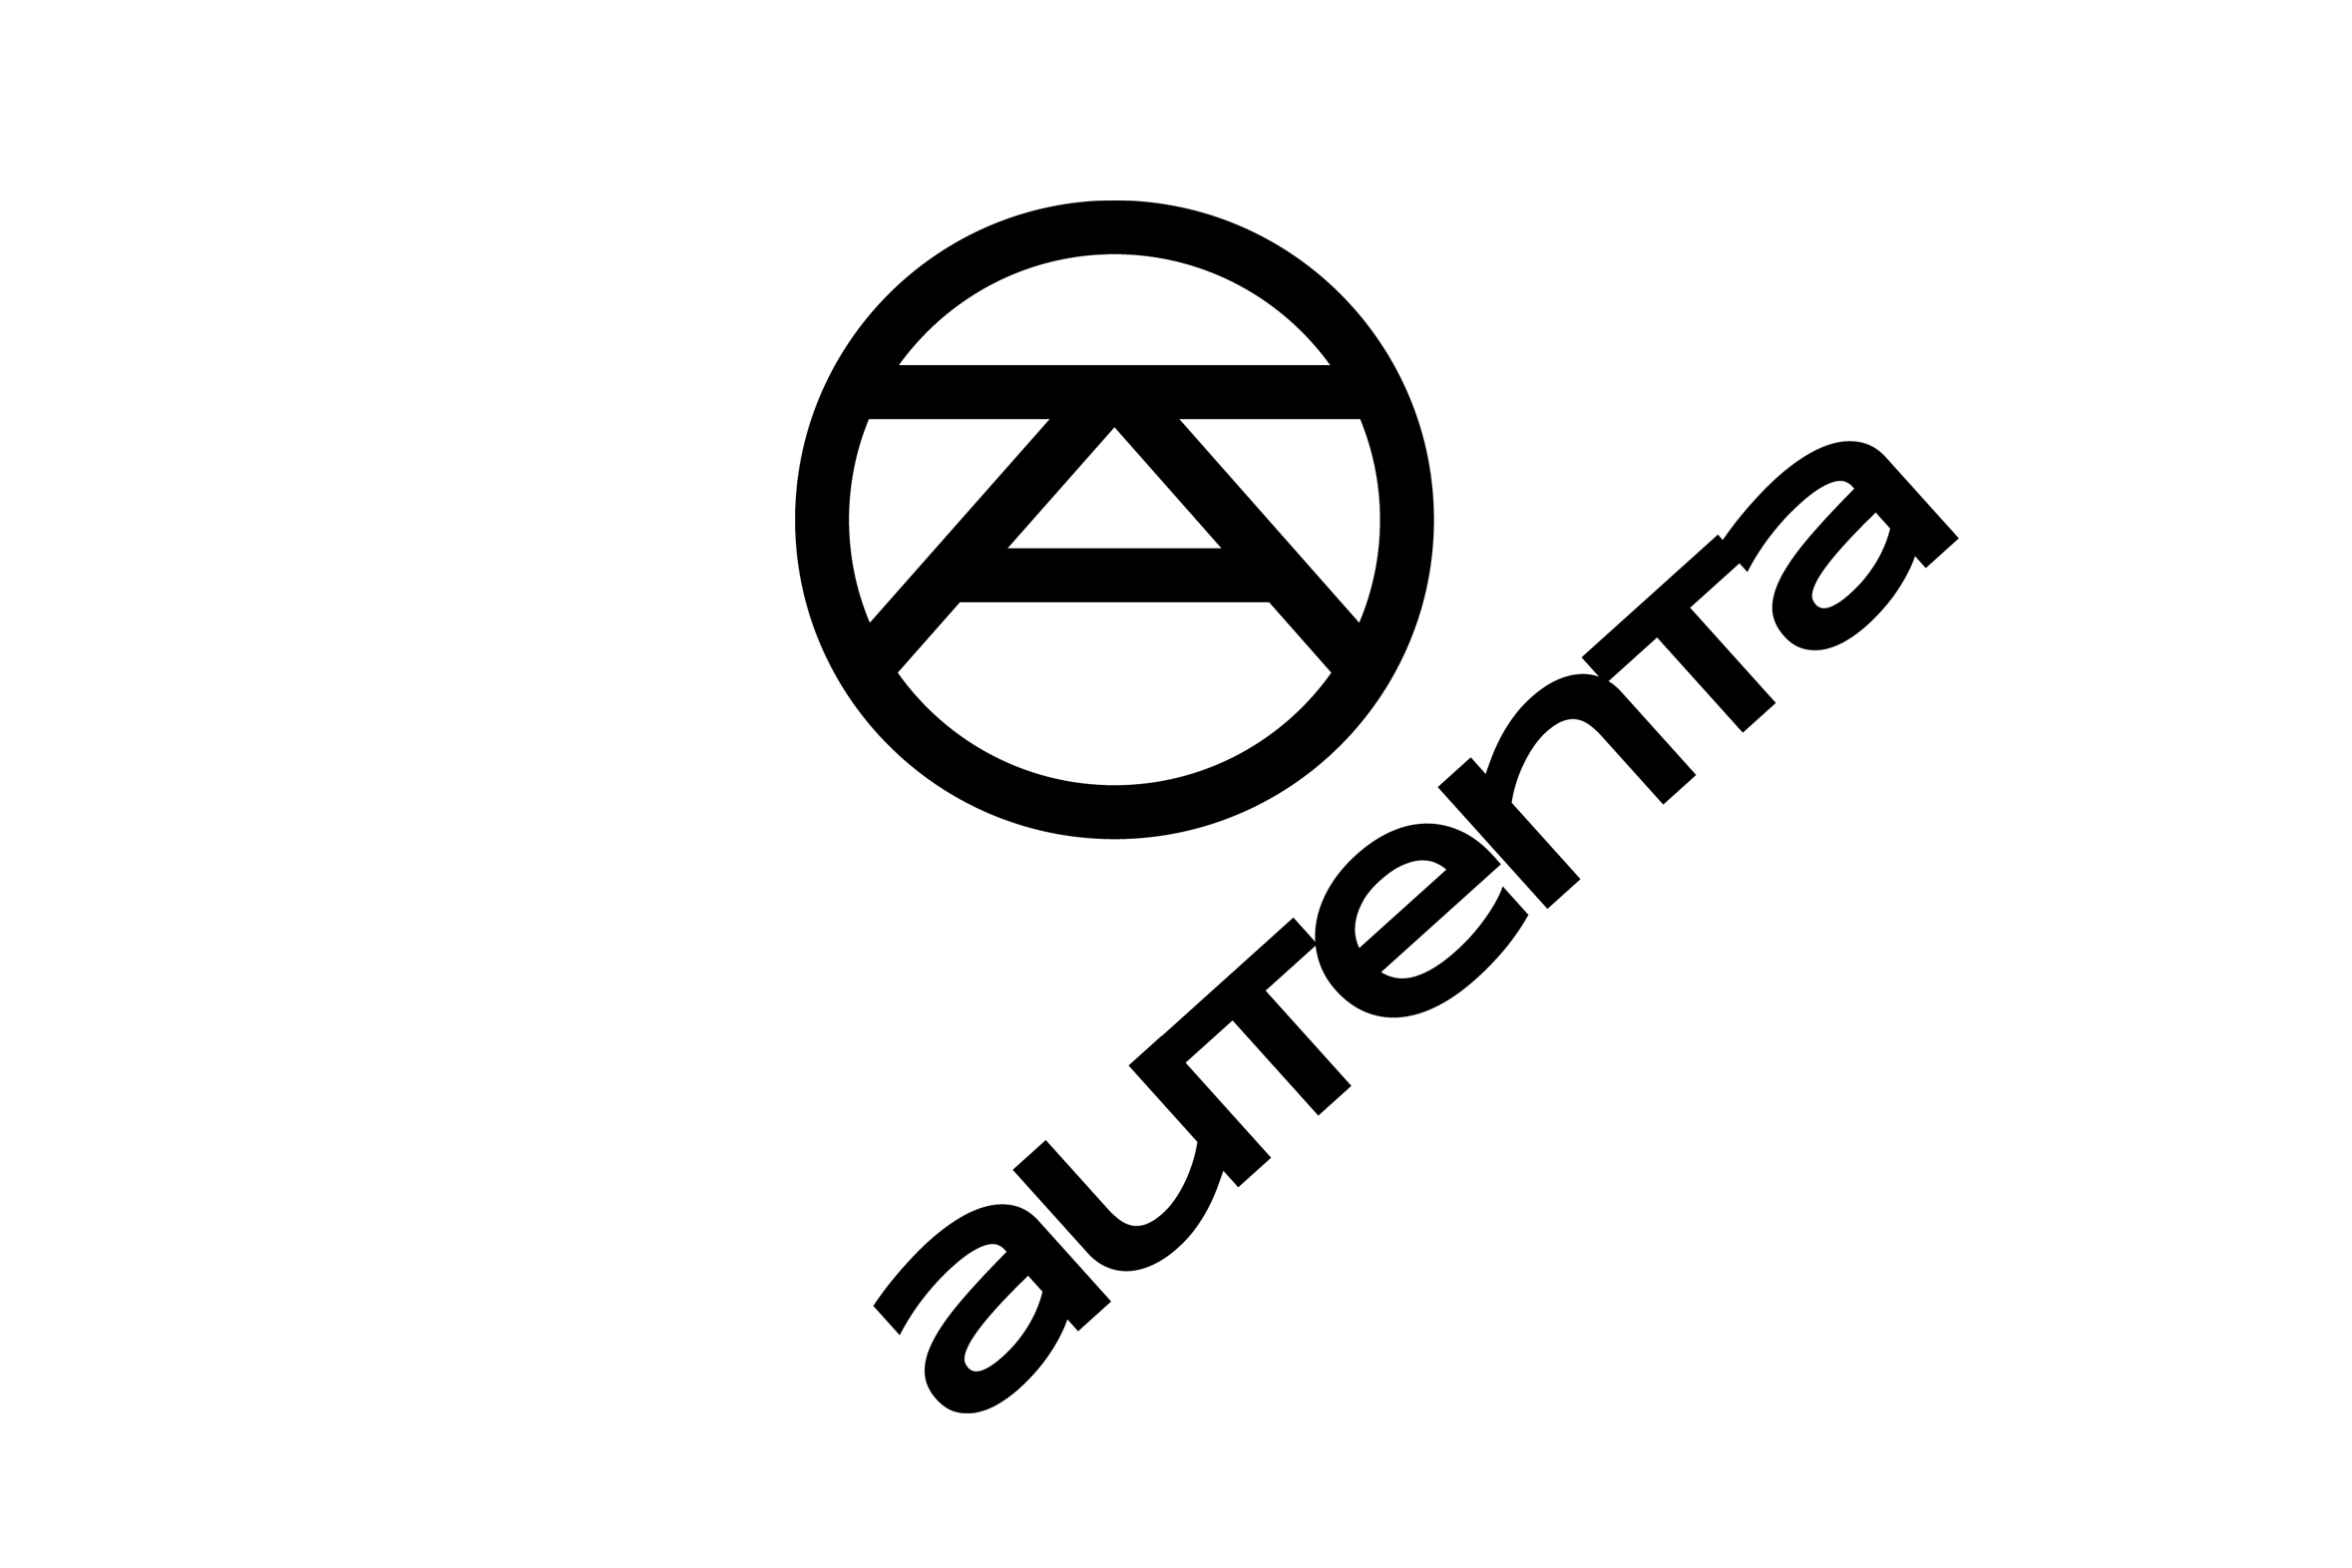 Projekt logo agencji marketingowej Autenta